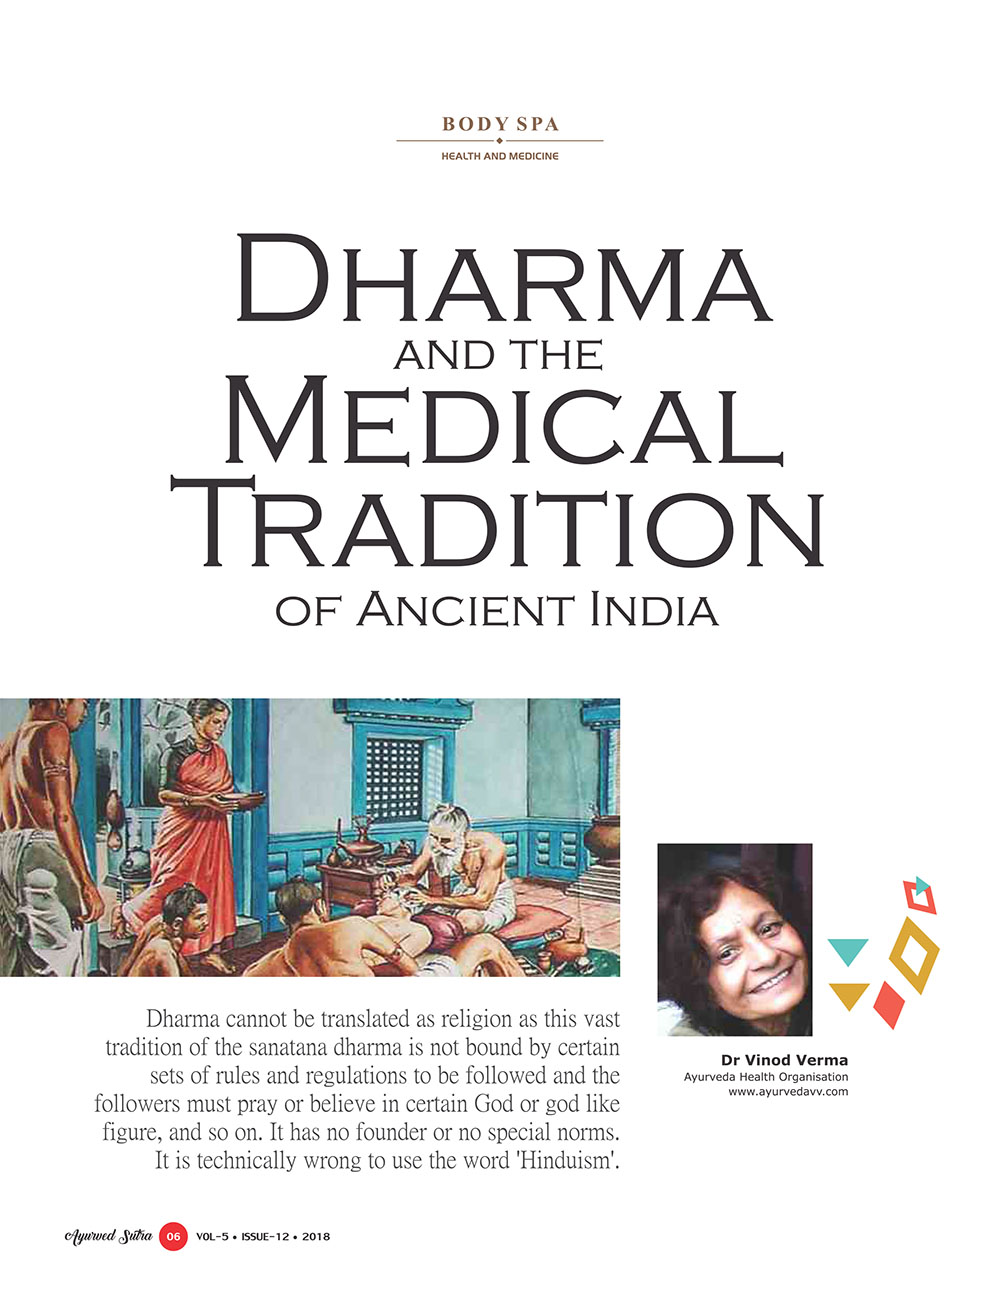 Ayurvedsutra Vol 05 issue 12 8 - Dharma and the Medical Tradition of Ancient India